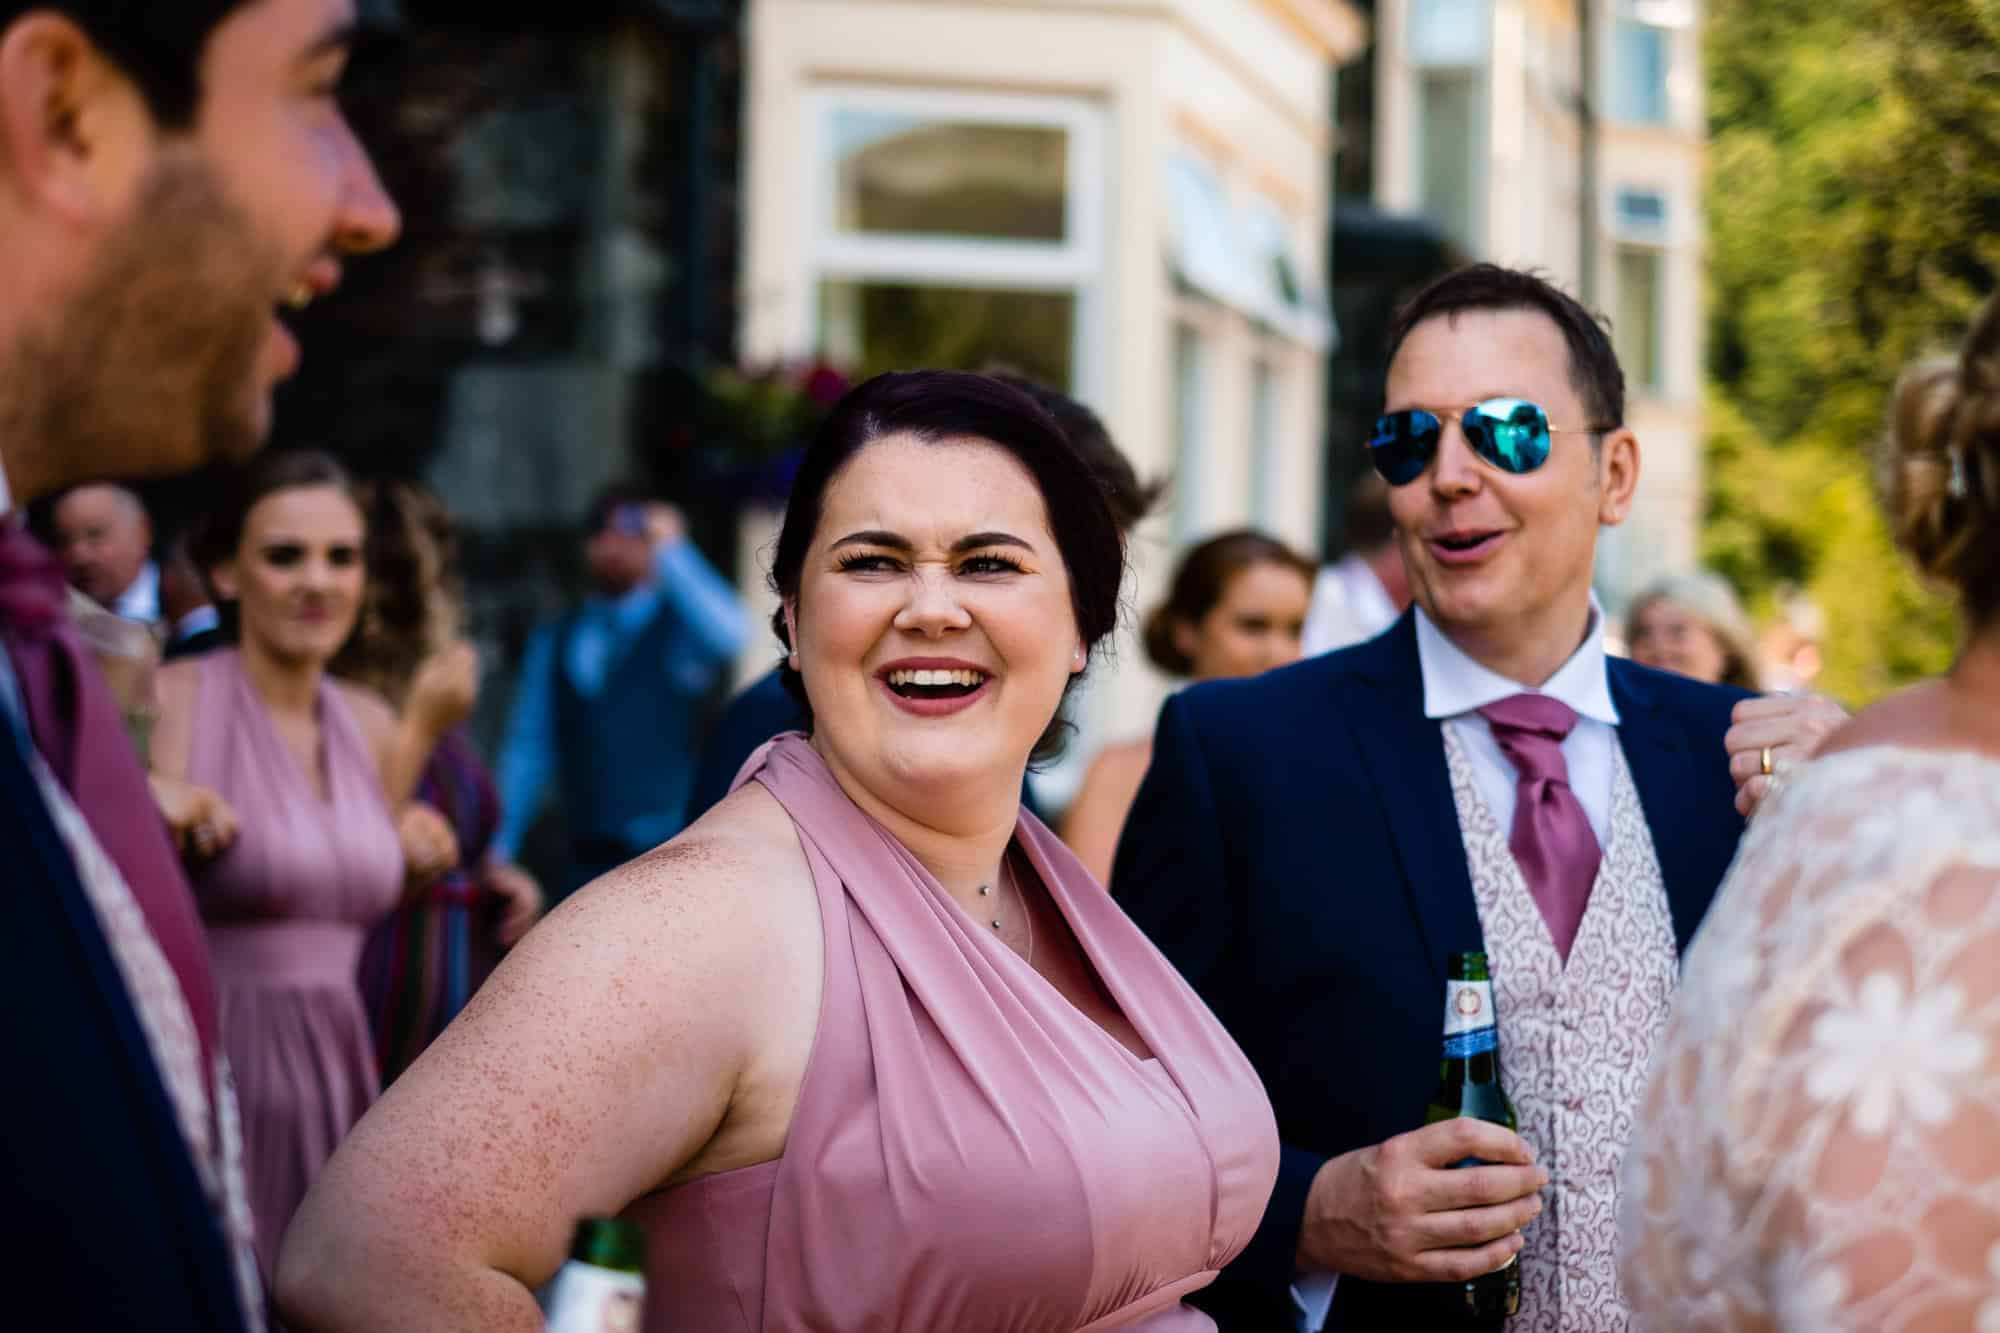 bridesmaid laughing at the groom